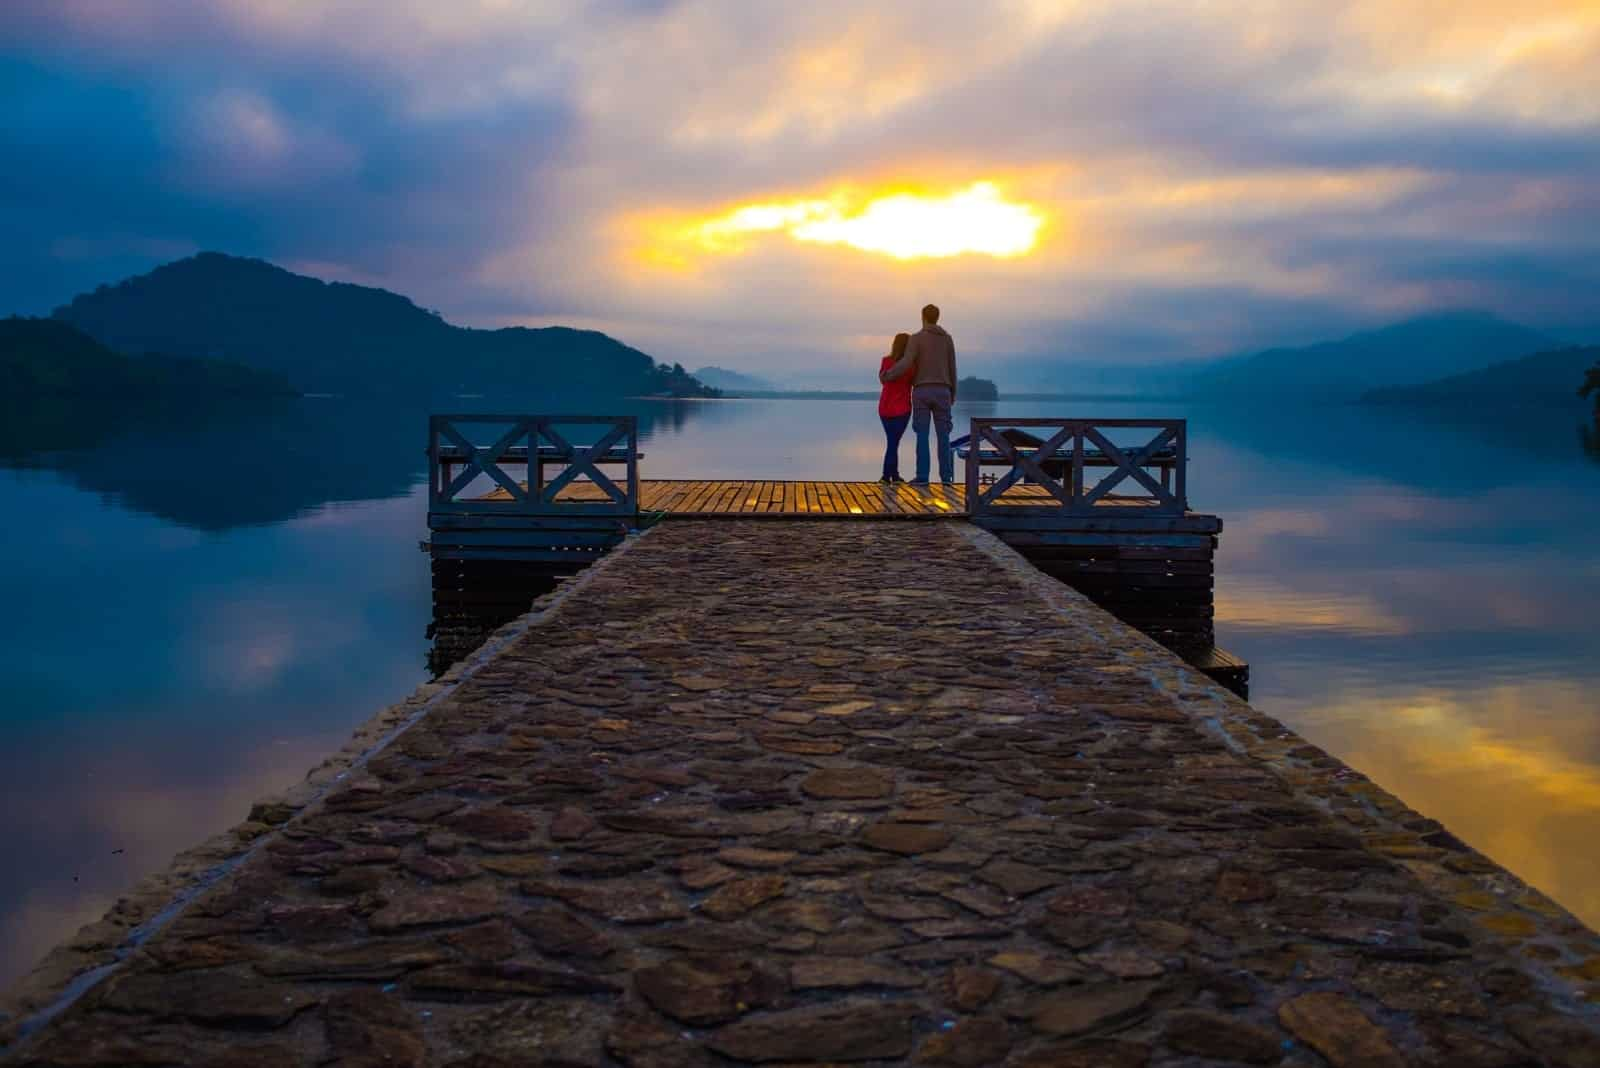 man and woman standing on dock during sunset